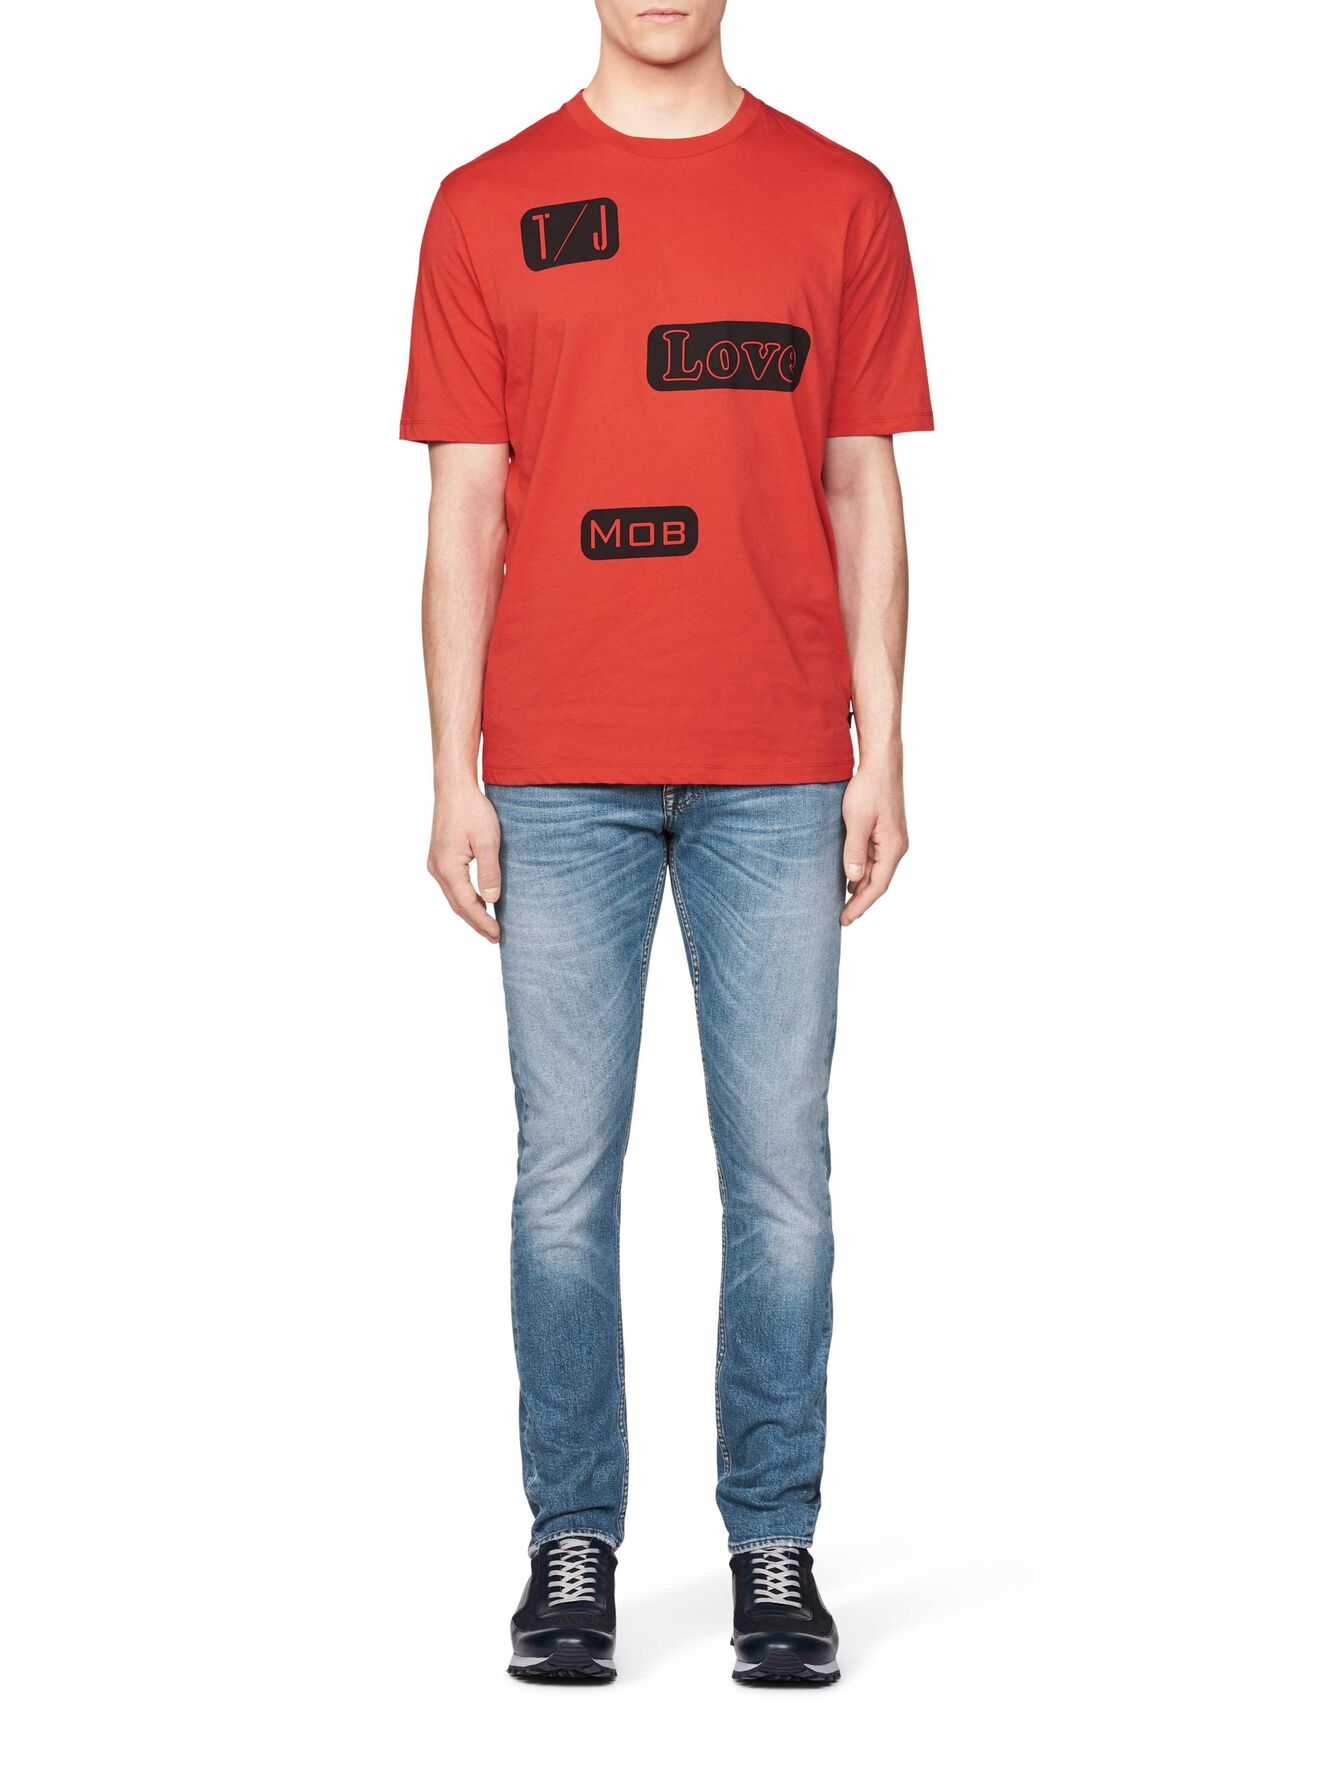 Stipe Pr T-Shirt in Valiant Poppy from Tiger of Sweden